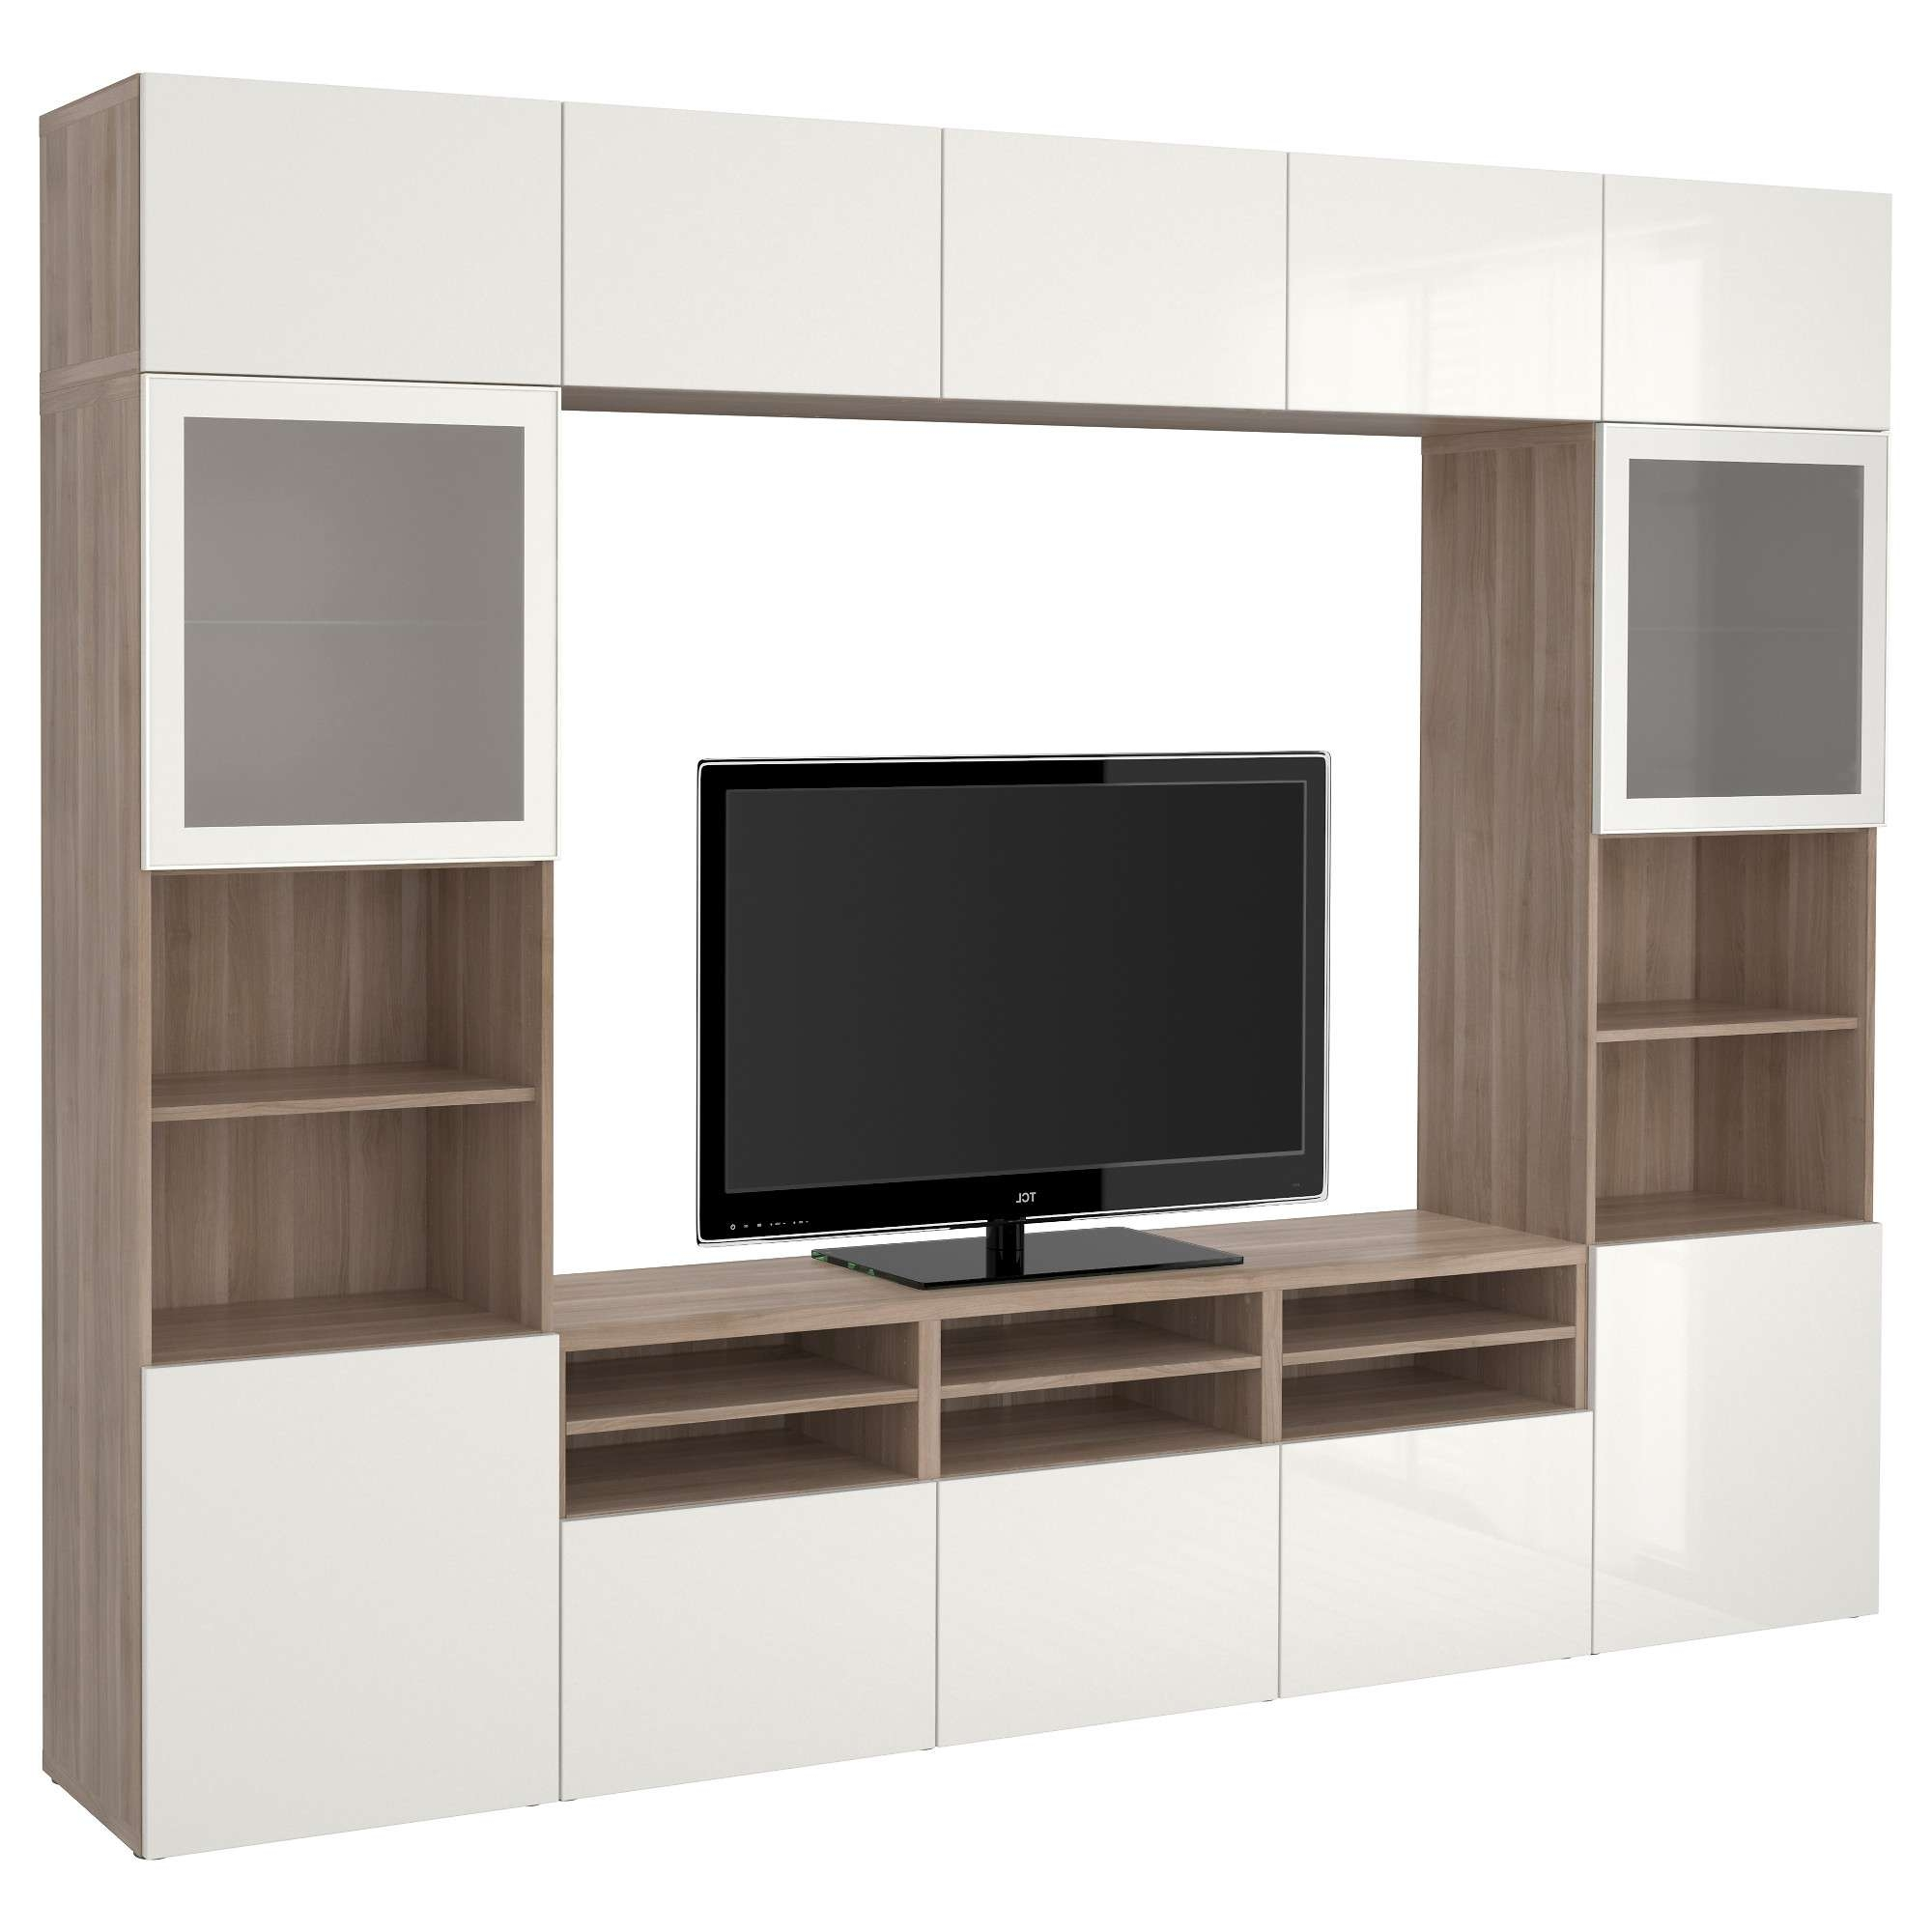 Endearing Media Console Ikea Design Decoration Of Tv Stands Intended For Corner Tv Cabinets With Glass Doors (View 7 of 20)